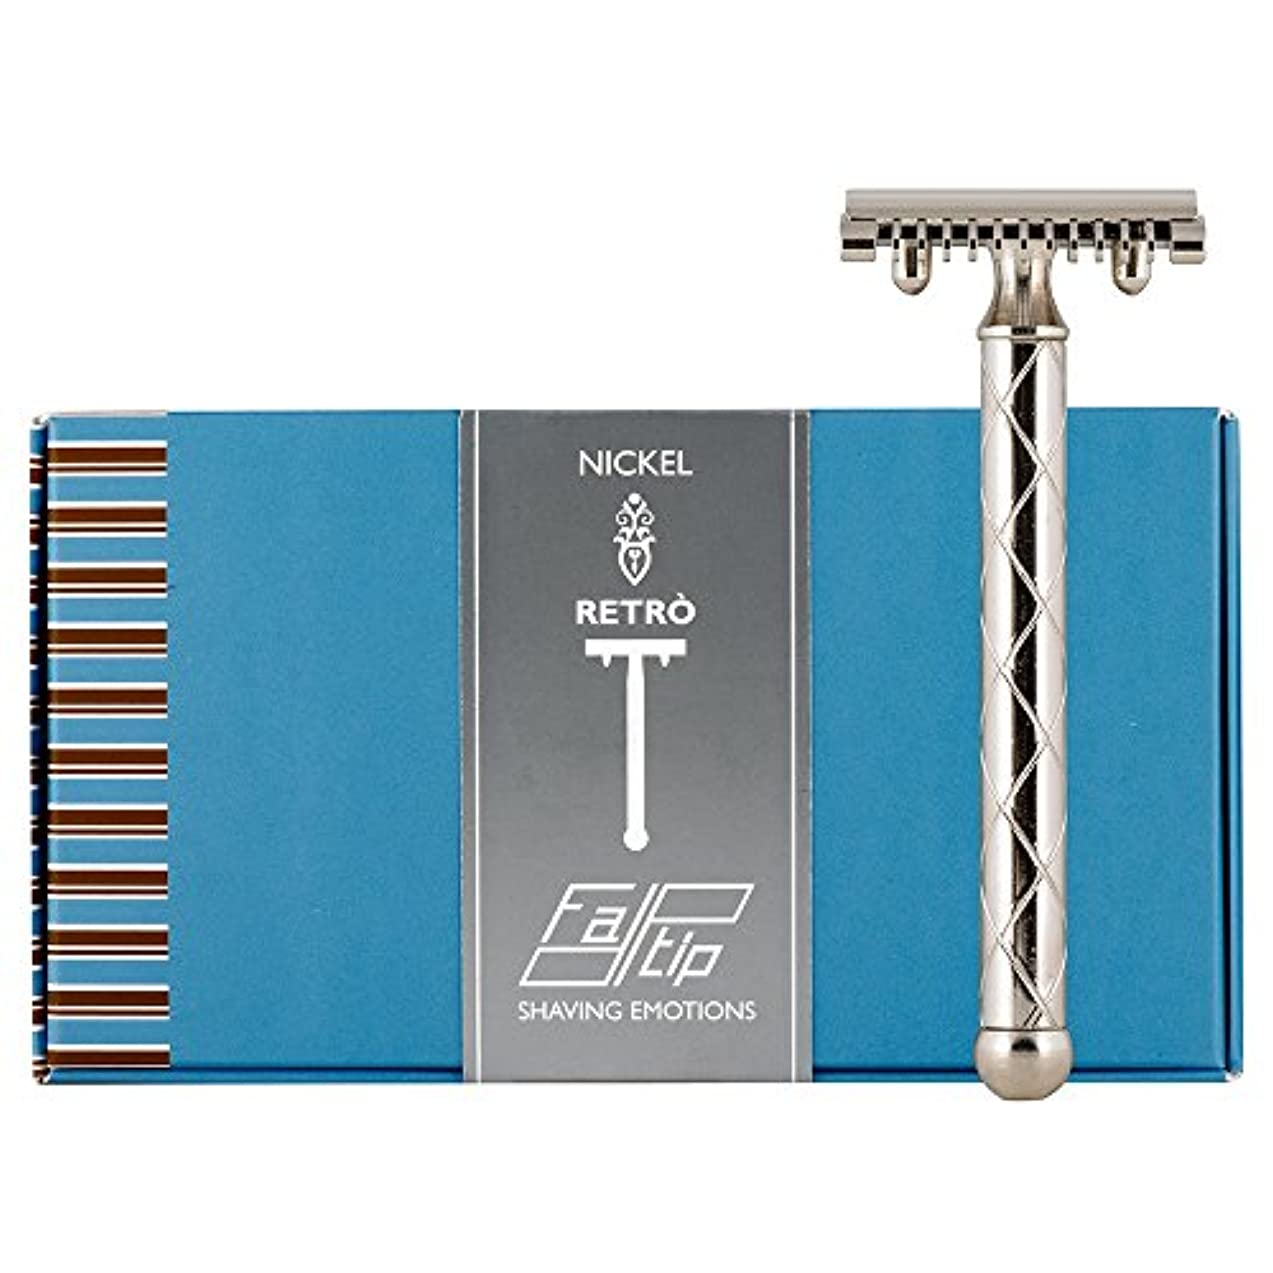 達成する重々しい堤防Fatip Retro Double Edge Safety Razor - Nickel Plated by Fatip